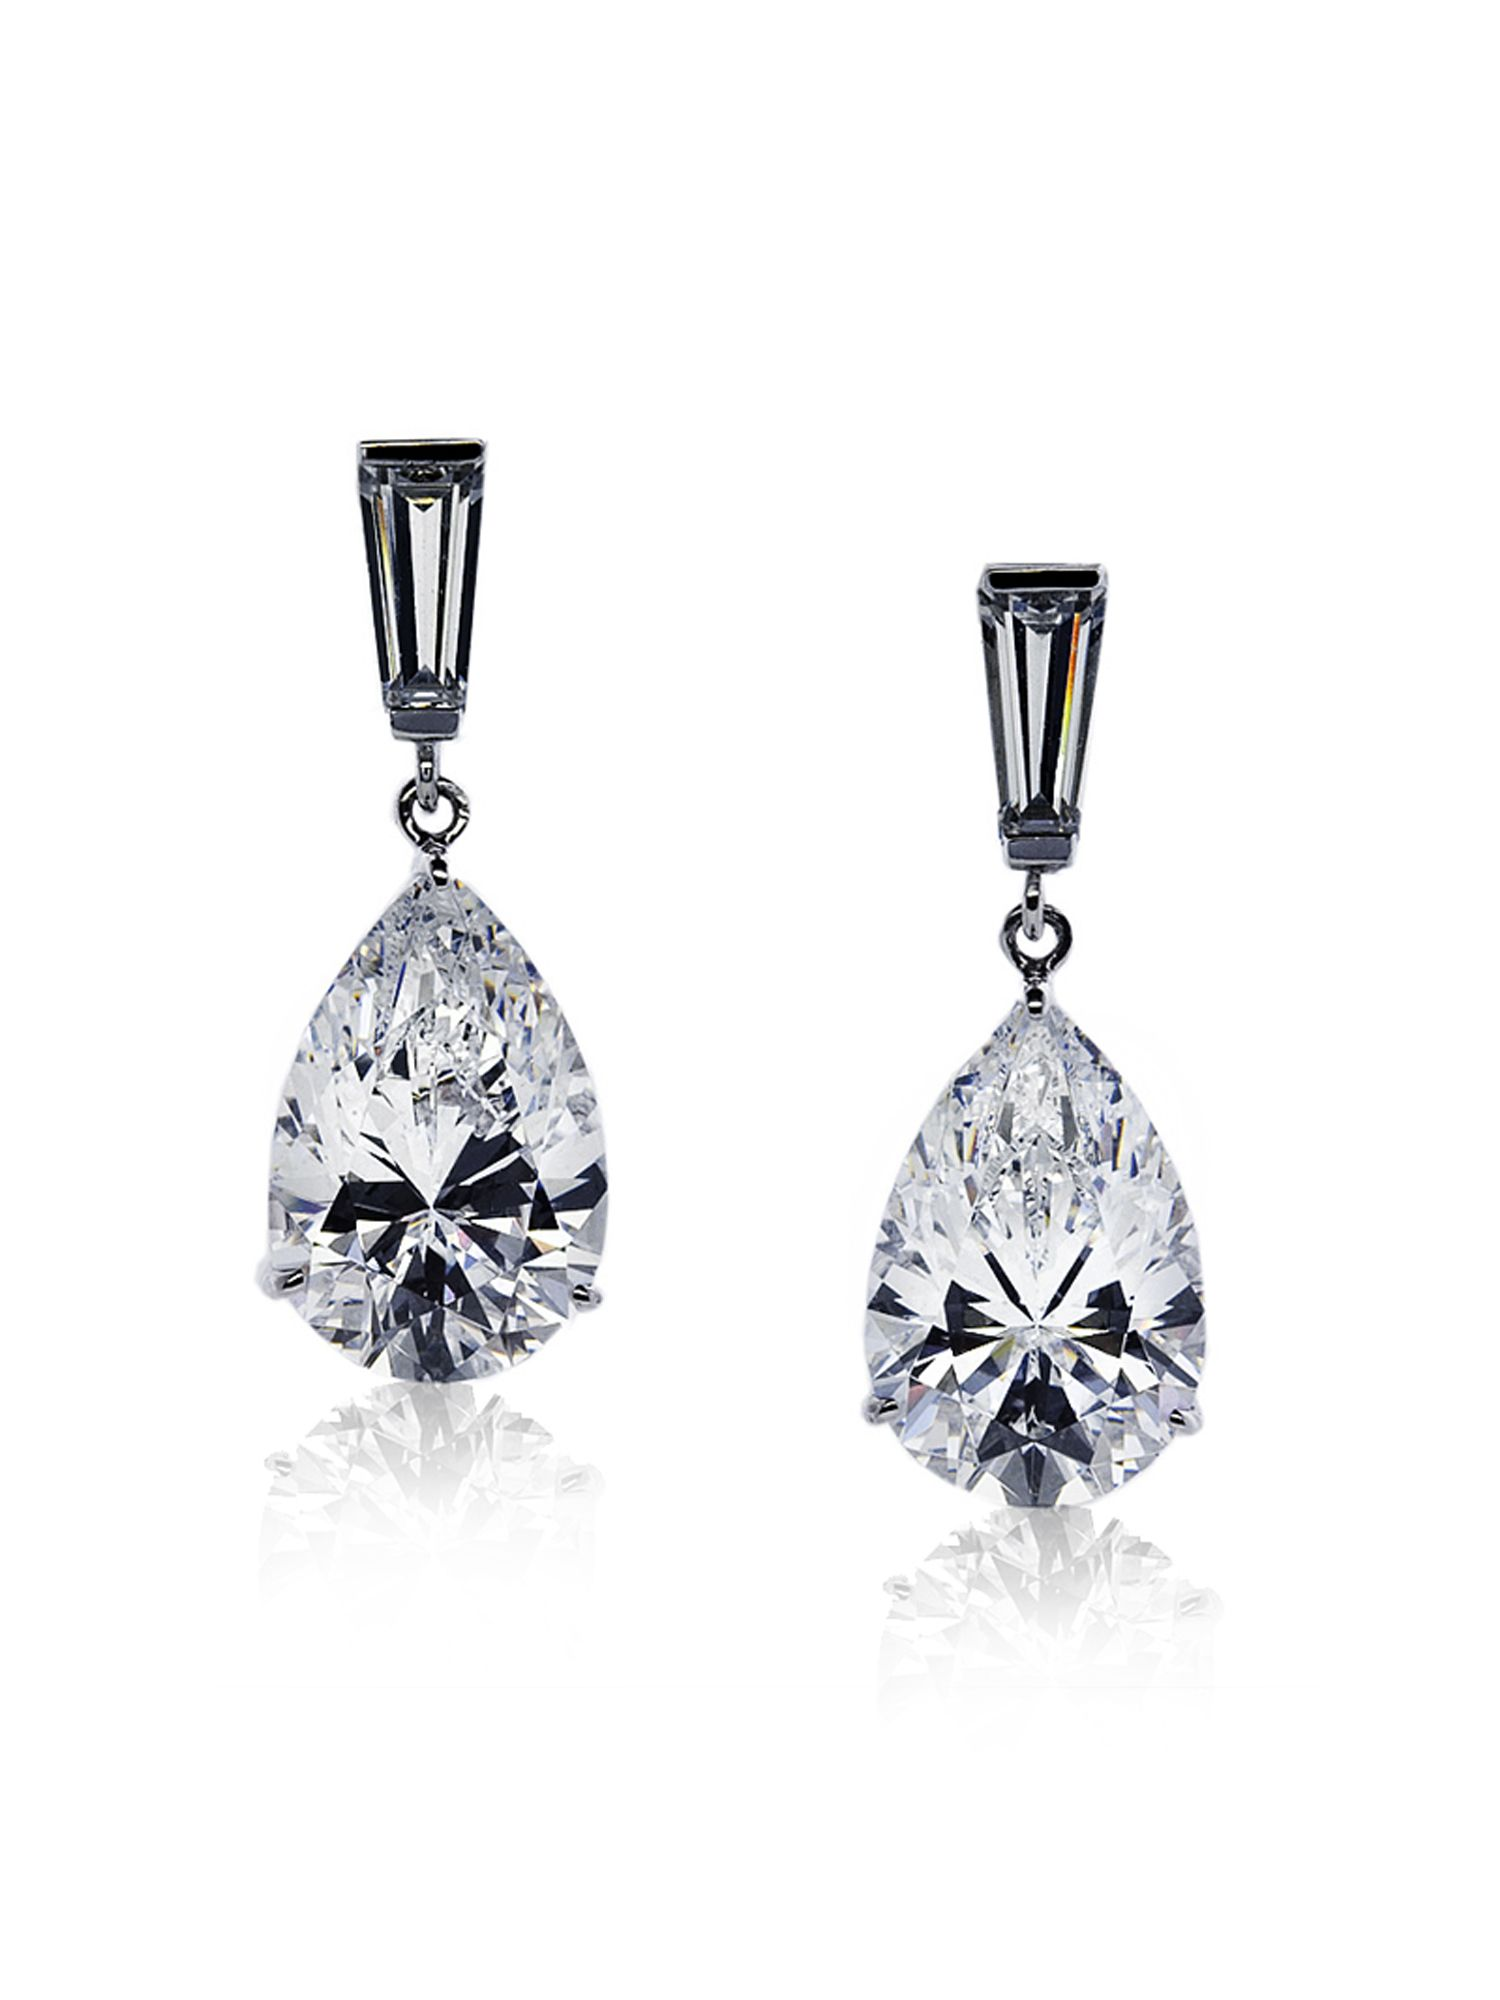 3ct Baguette Pear Drop Earrings